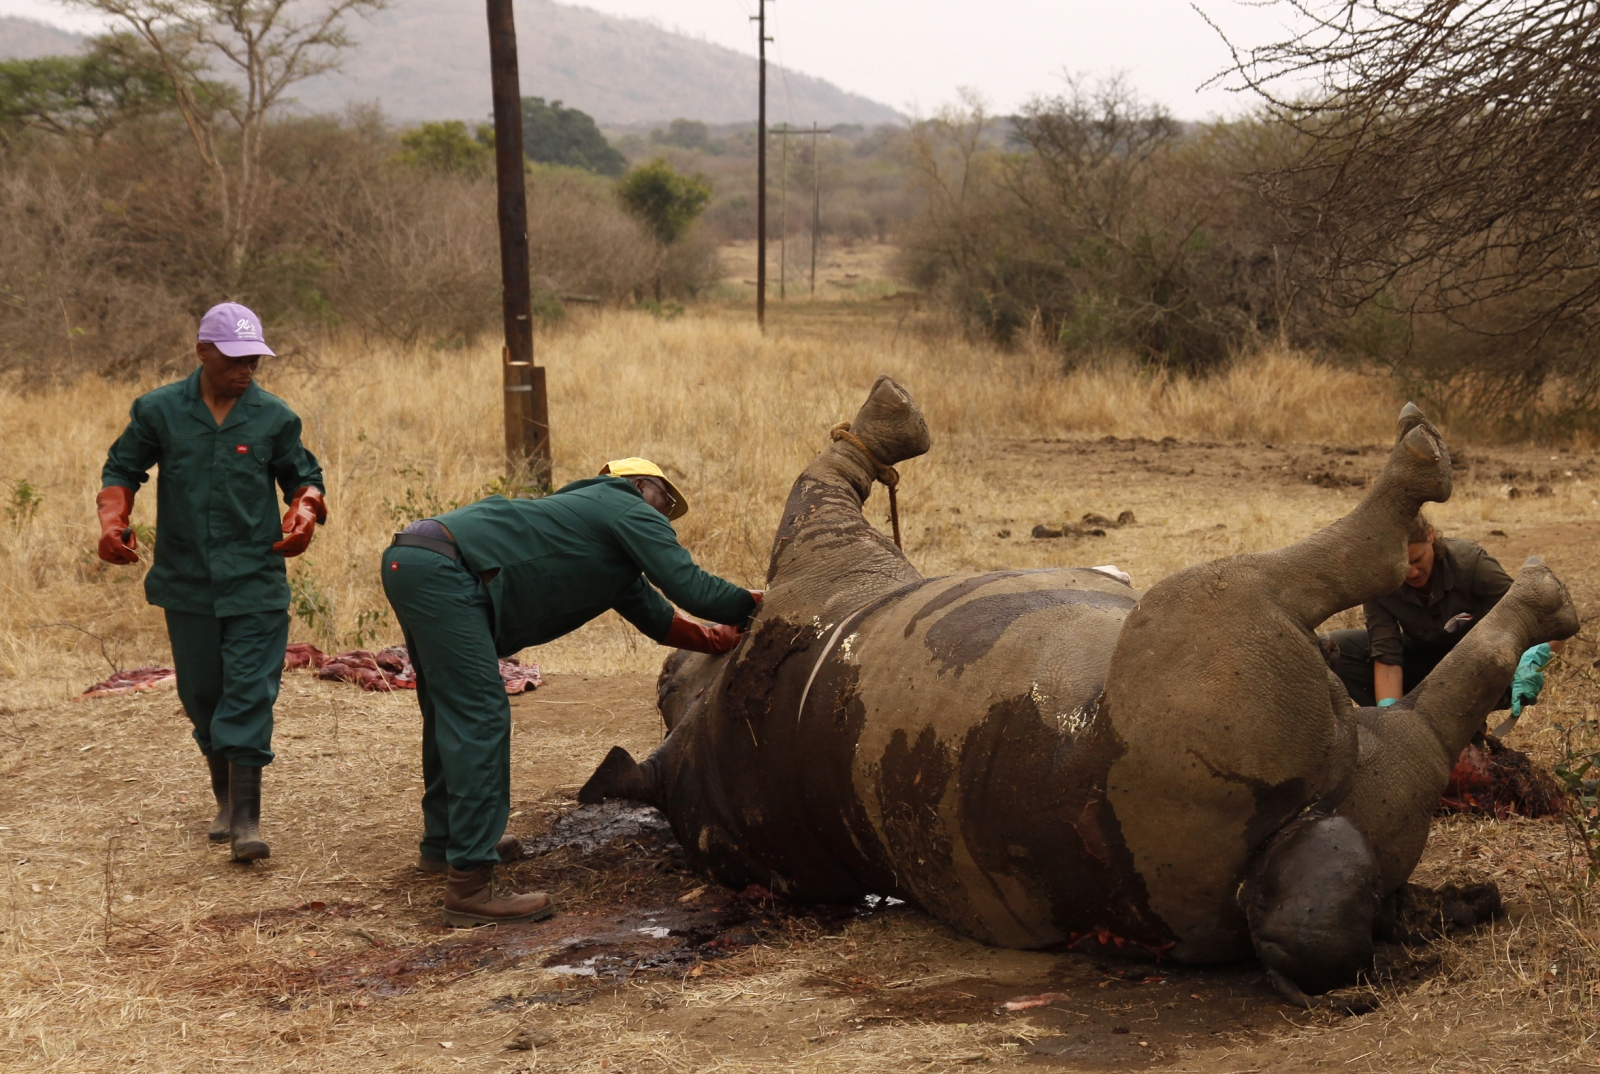 Workers perform a post-mortem on the carcass of a rhino after it was killed for its horn by poachers at the Kruger national park